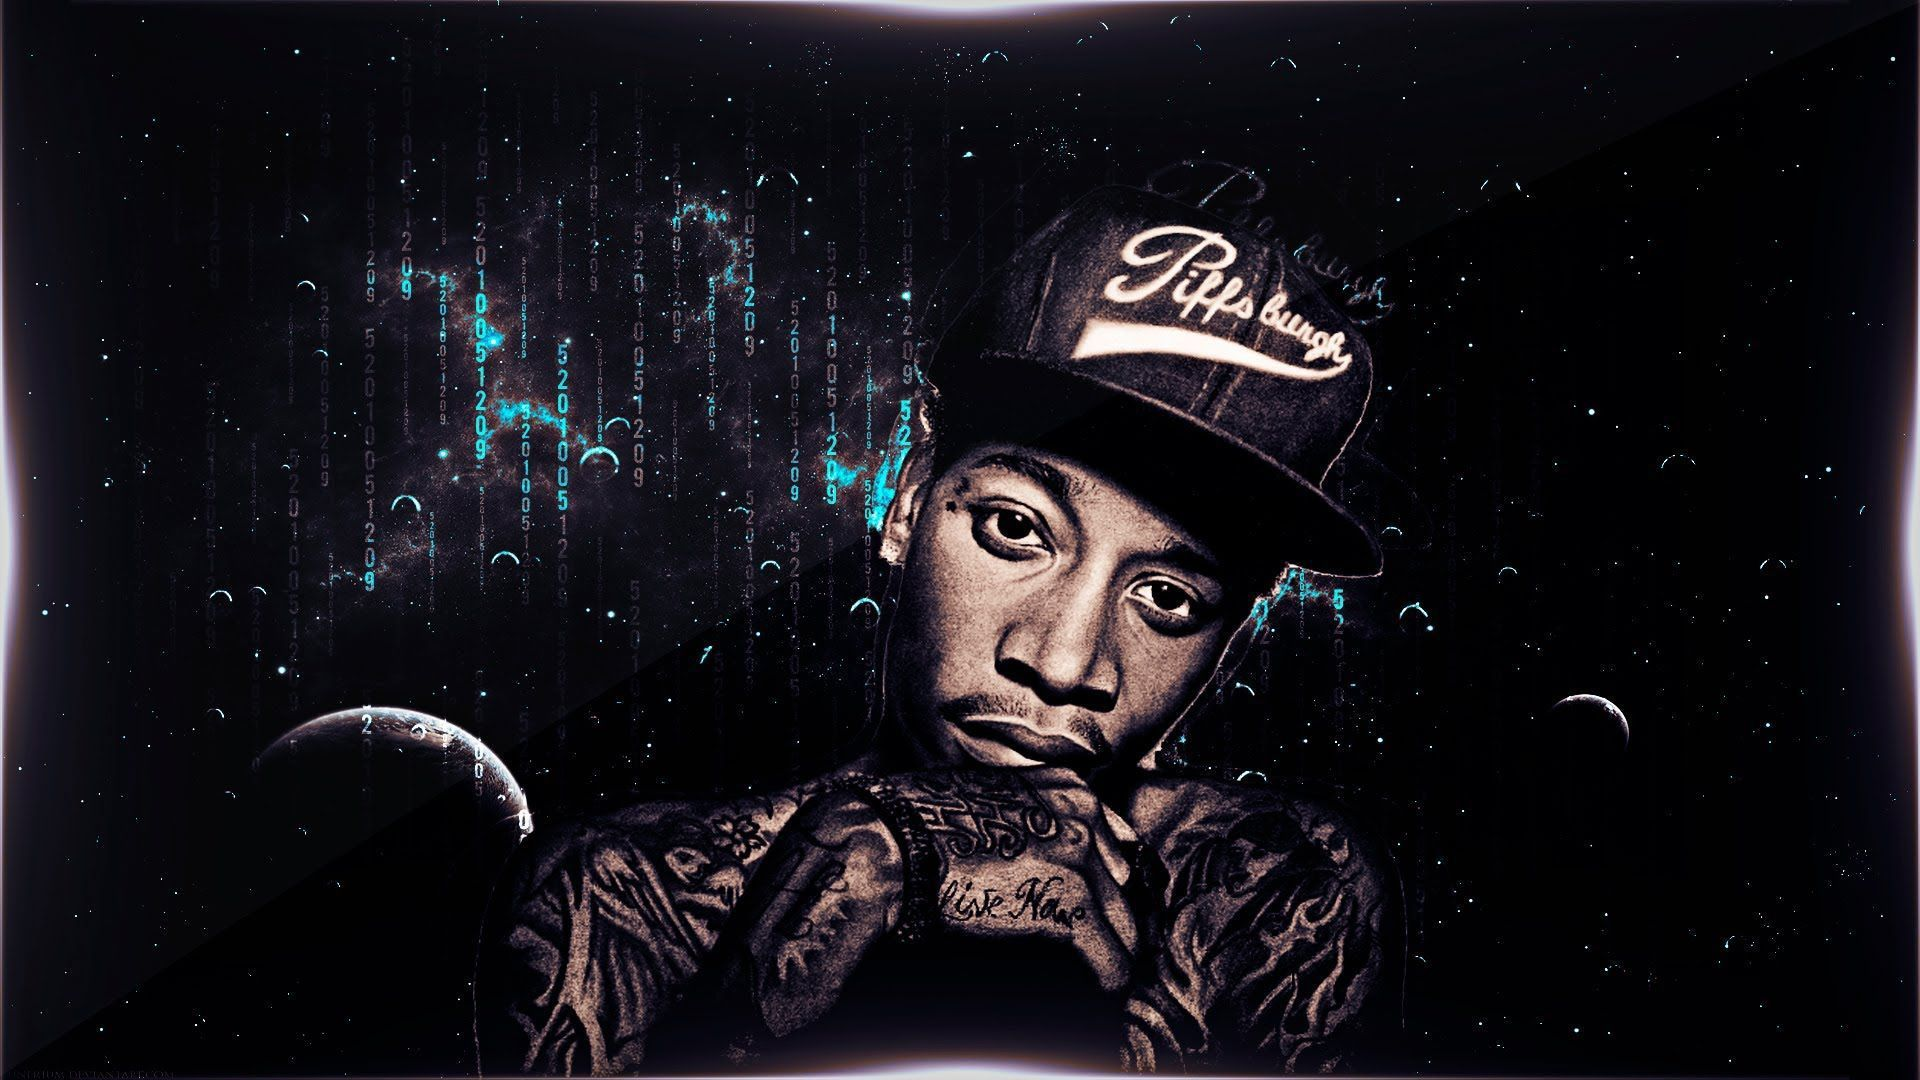 wiz khalifa wallpapers images photos pictures backgrounds